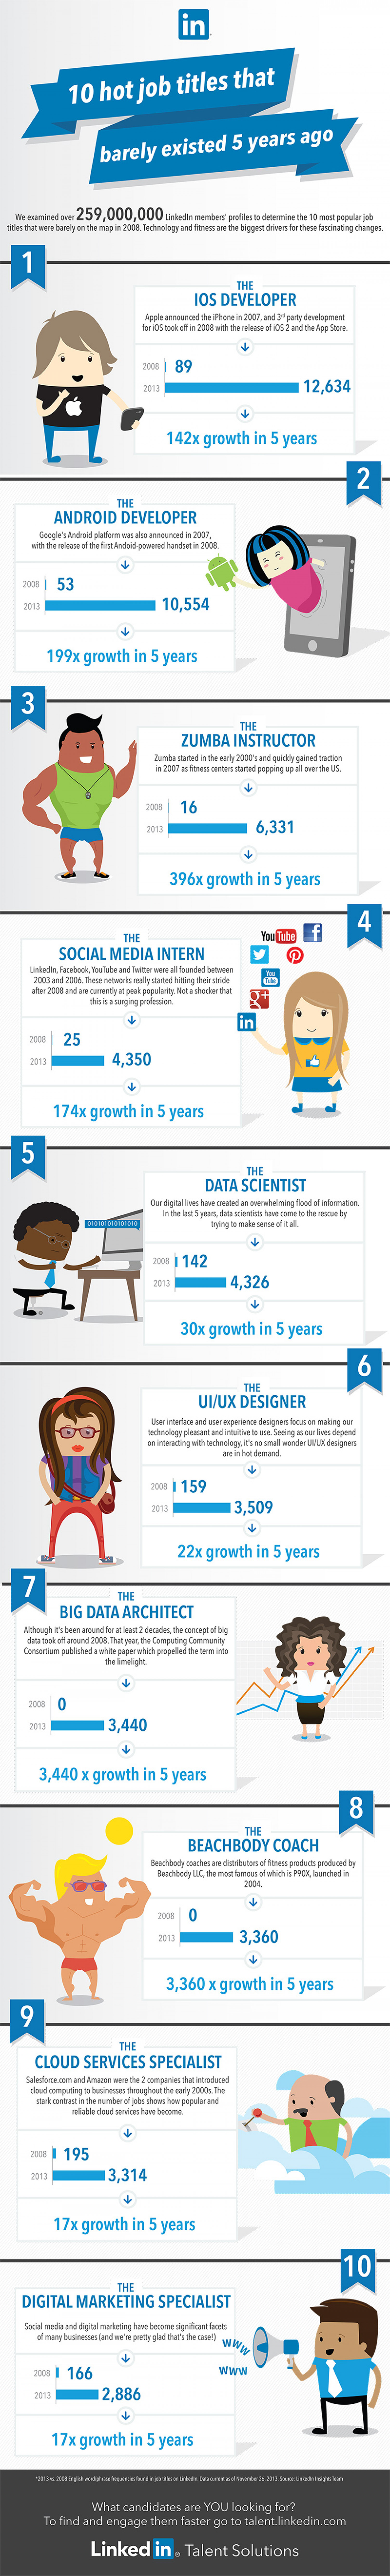 top job titles that didn t exist years ago ly top 10 job titles that didn t exist 5 years ago infographic